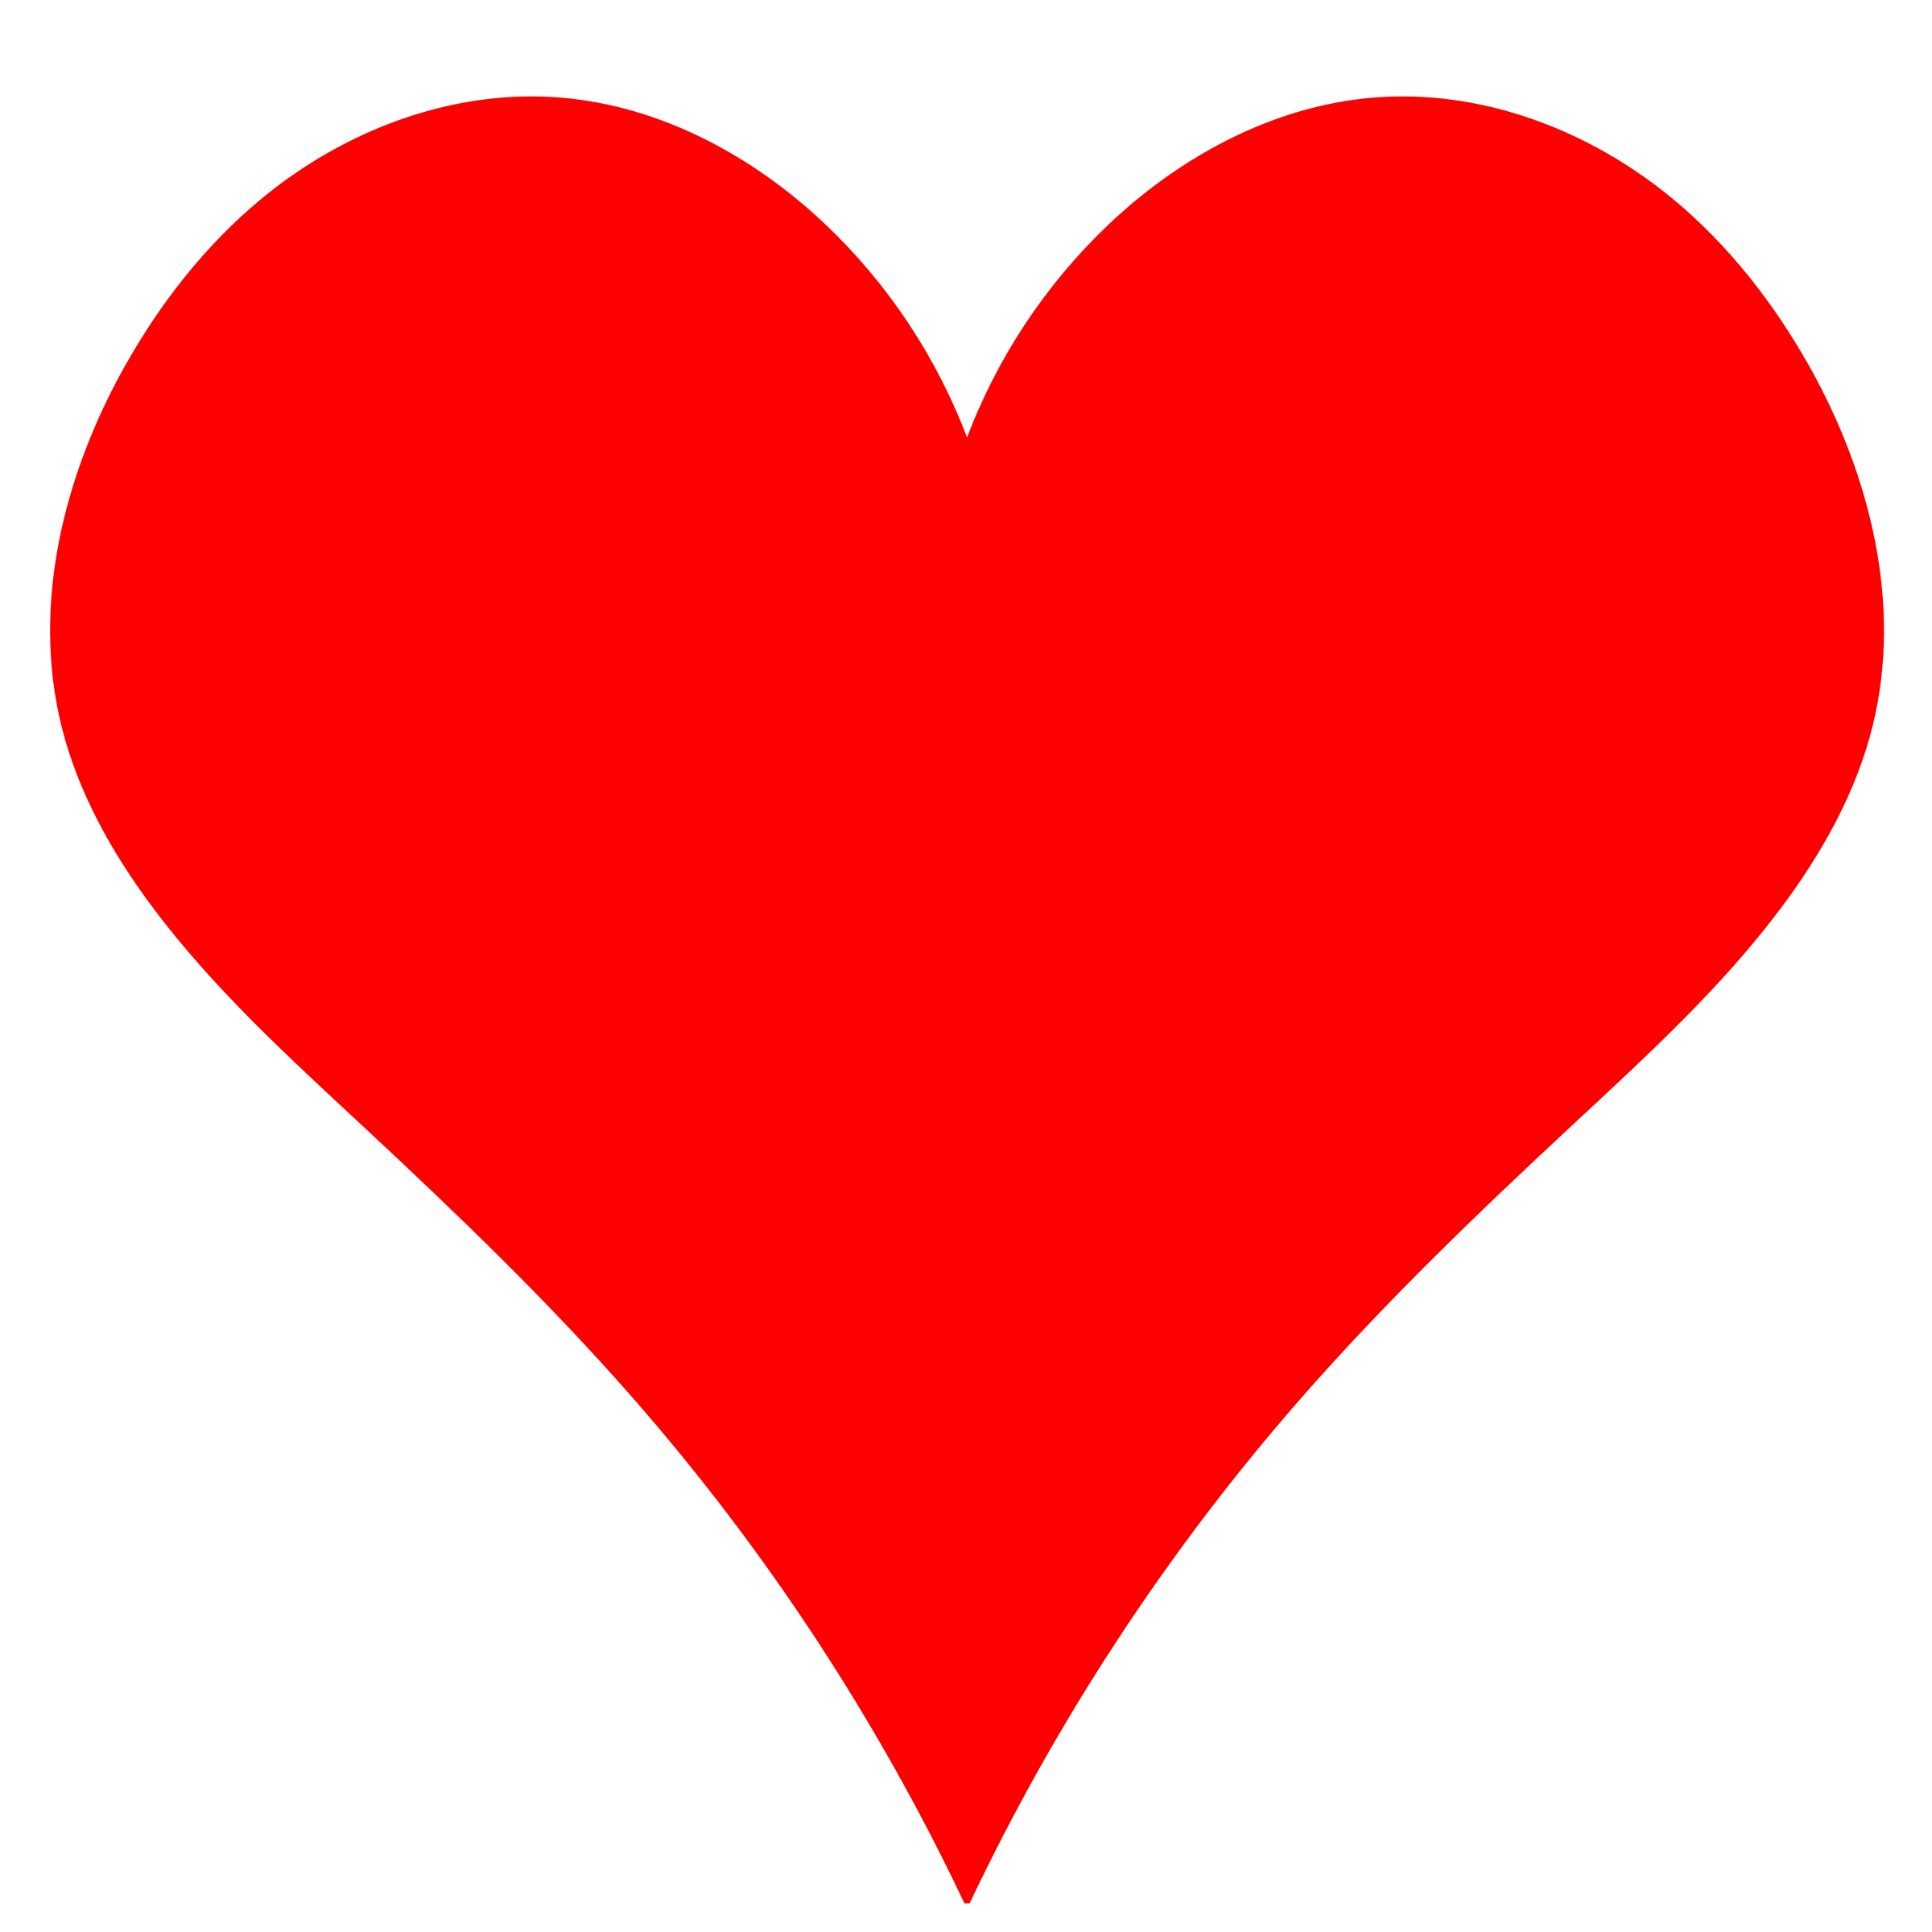 Heart Shapes - ClipArt Best